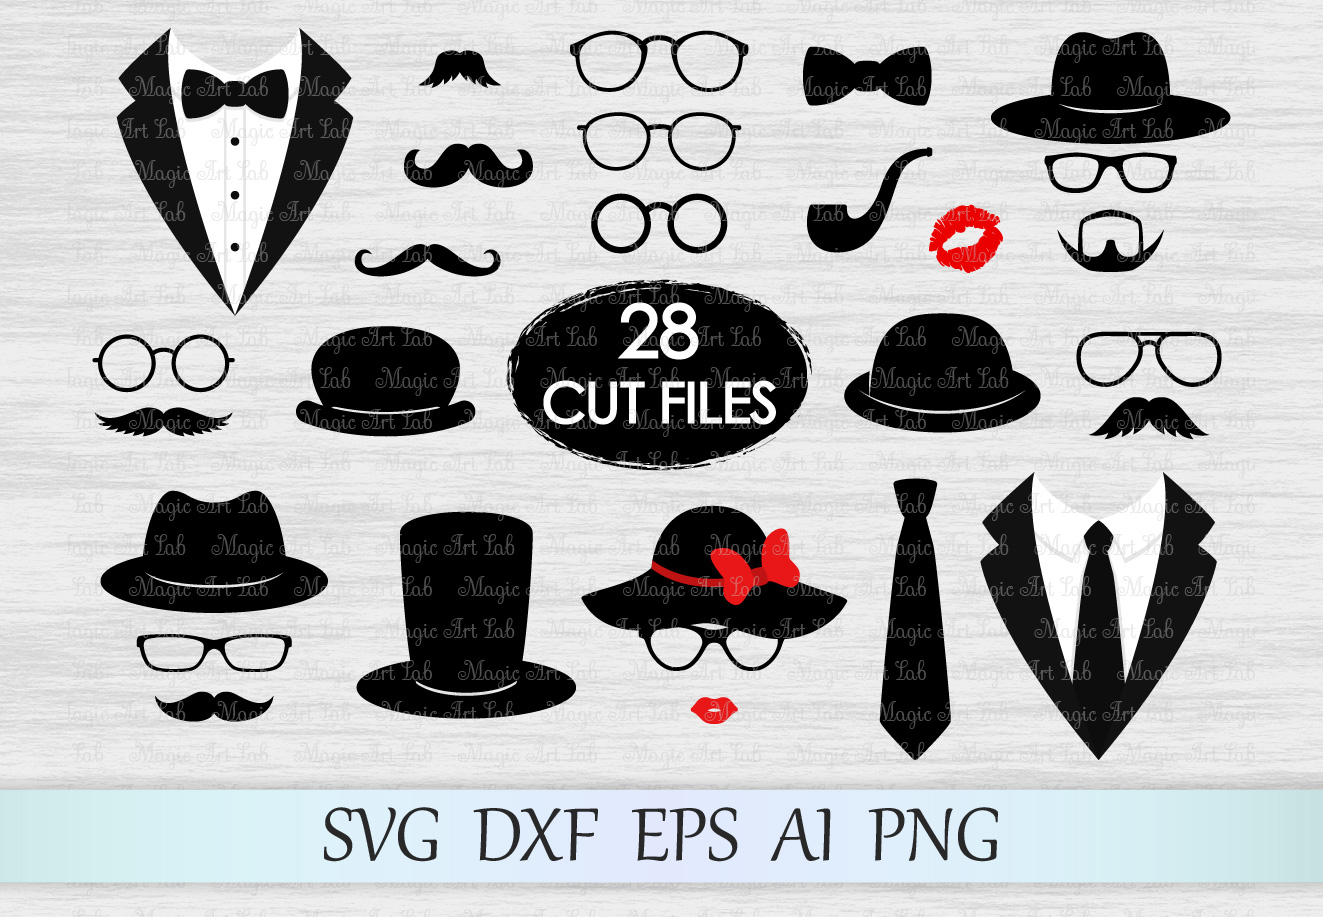 Photo booth props svg, Mustaches svg, Glasses svg, Tuxedo svg, Hats svg, Smoking pipe svg, Retro svg, Lips svg, Tuxedo clipart, Gentleman svg example image 1